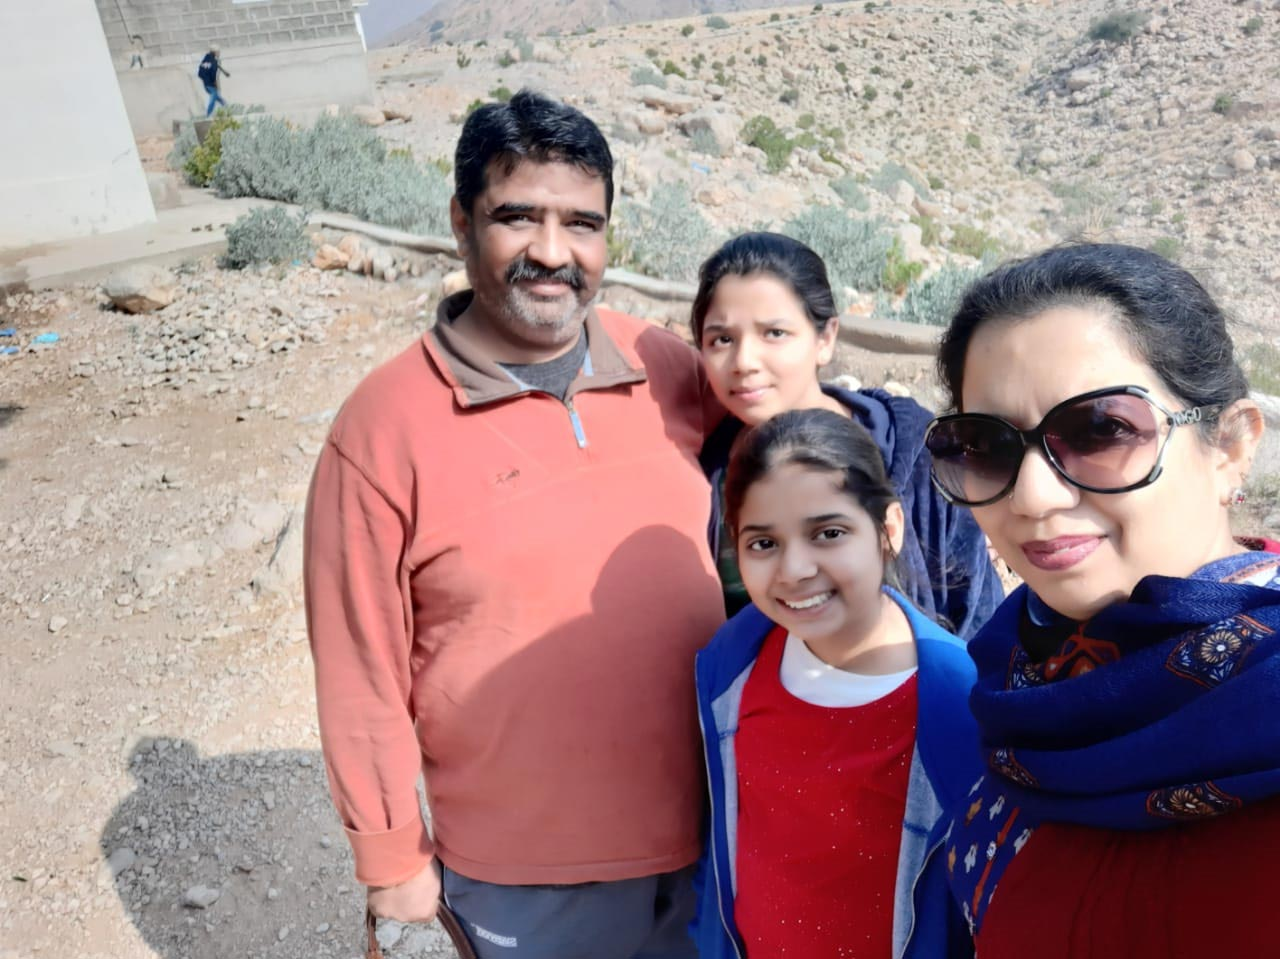 Imran, Zoya, Zara and Erum are at Johi on their way to Gorakh Hills